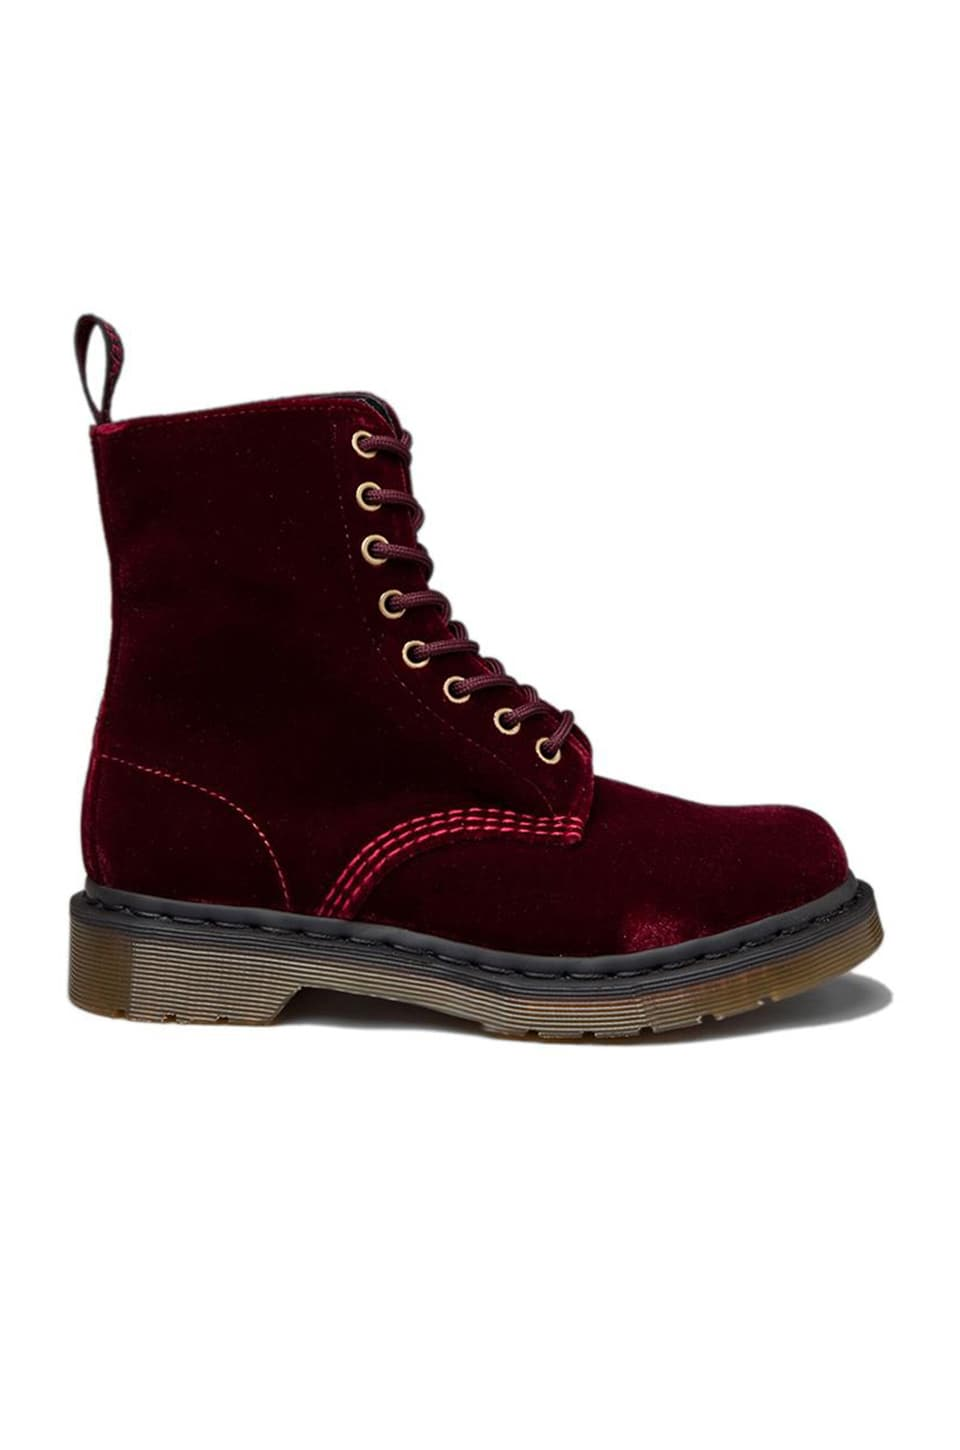 Dr. Martens Page Velvet Boot in Cherry Red